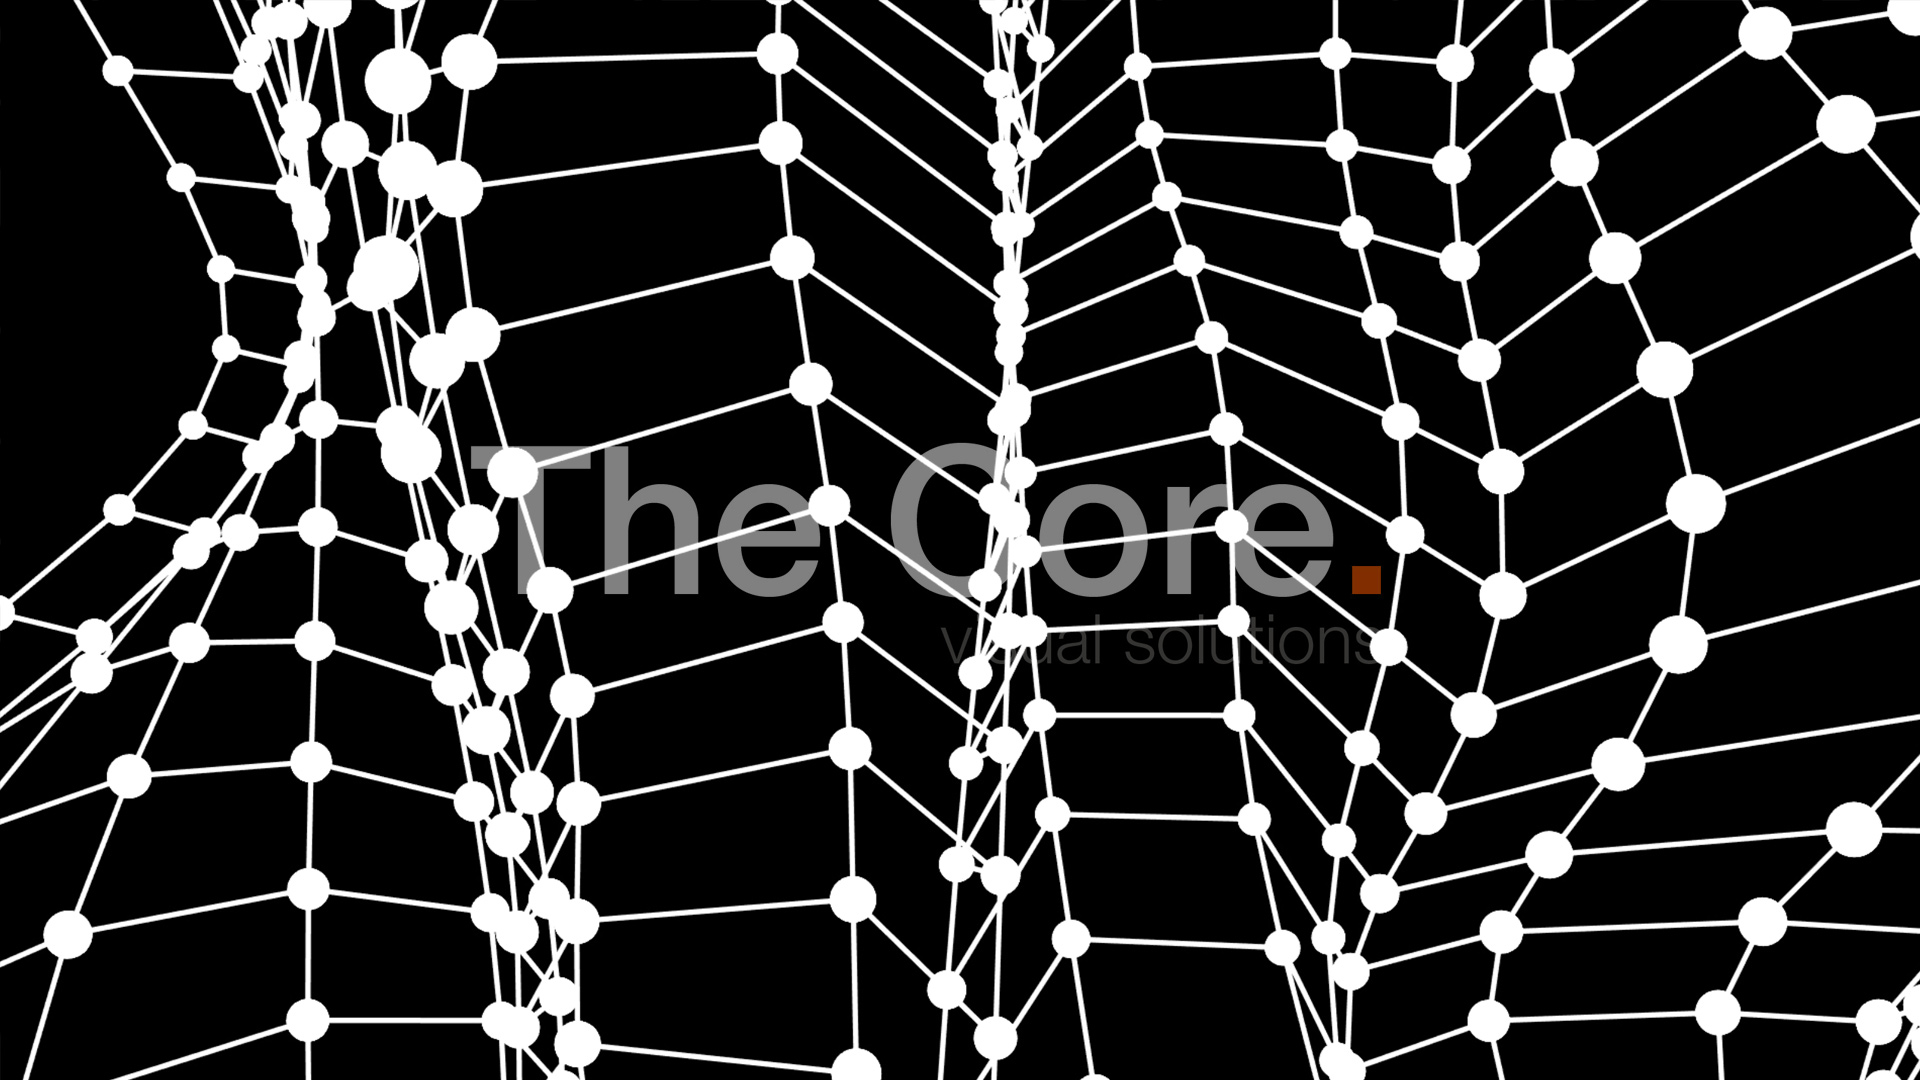 00066-WIRE-GRID-MOVE-DOWN-1-STILL